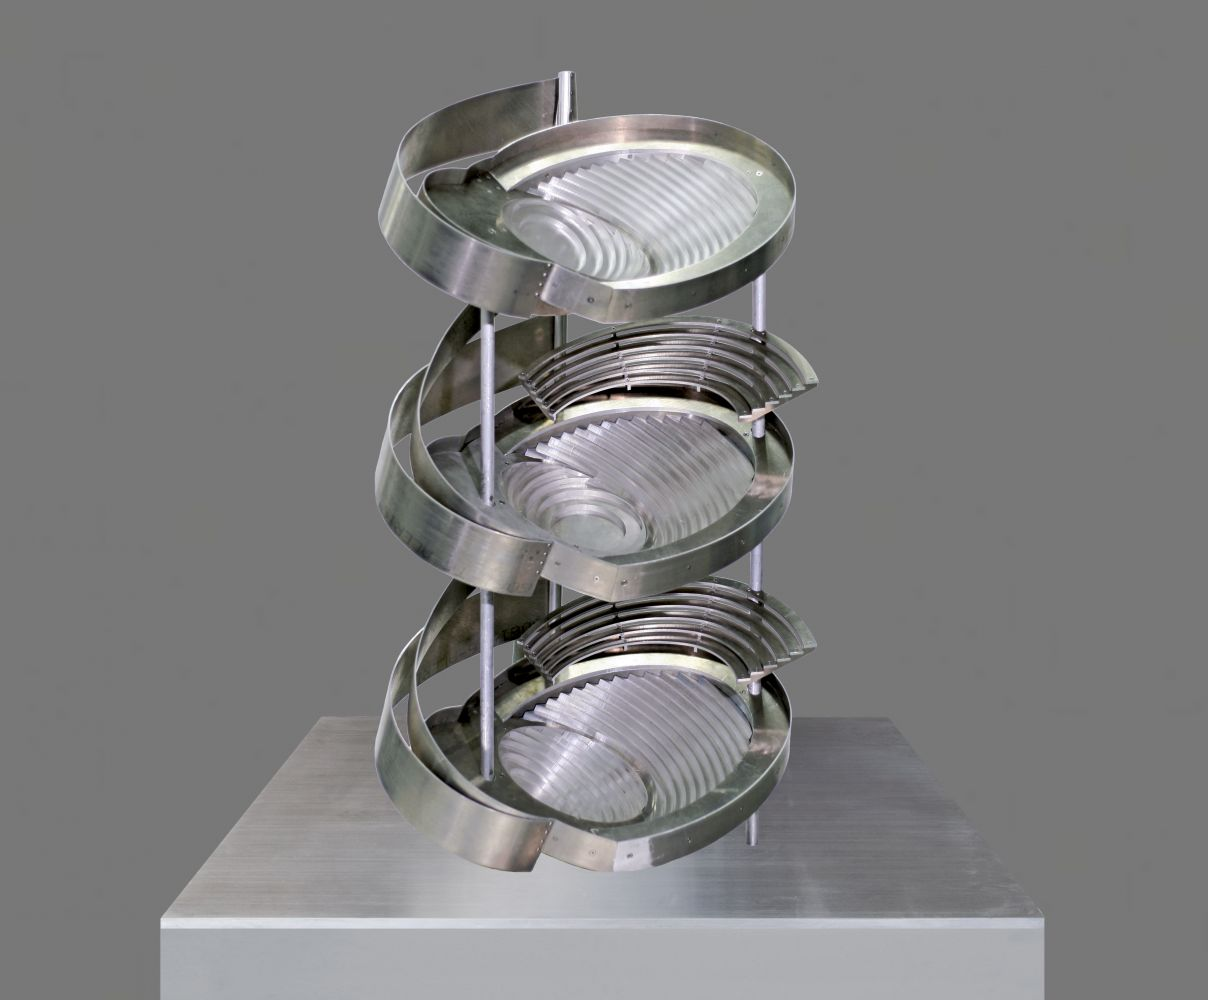 three-tier aluminum sculpture by Alice Aycock